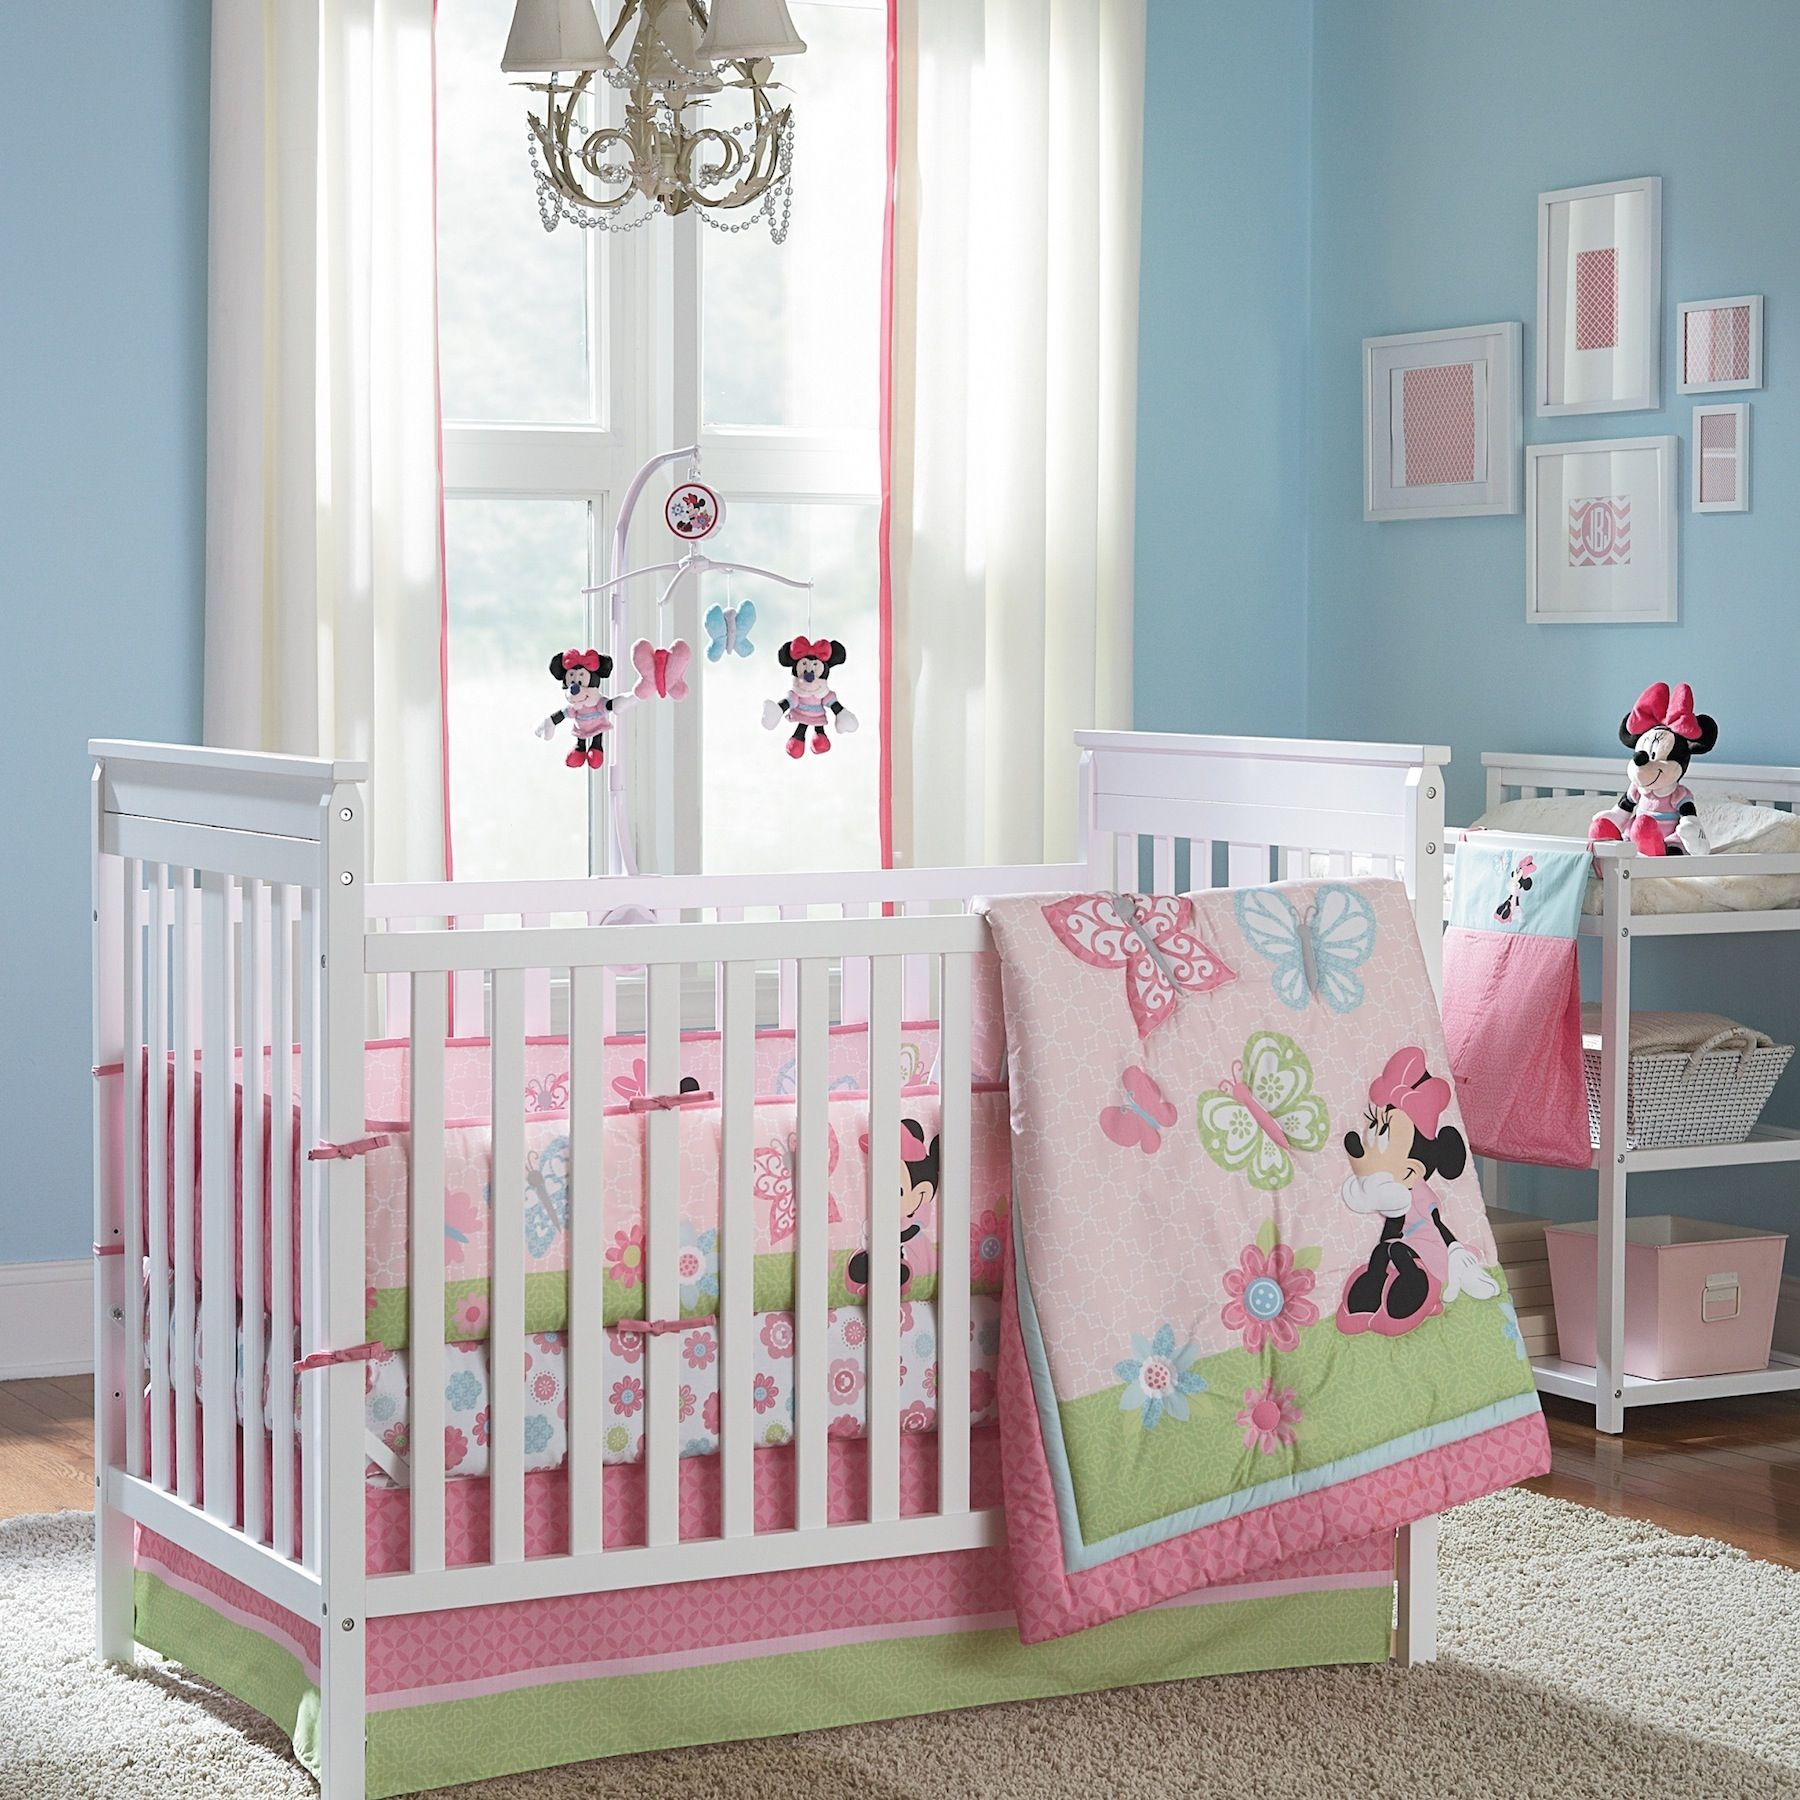 Geo Pooh Gear Collection at Sears | Decoracion bebe, Bebe y Cosas